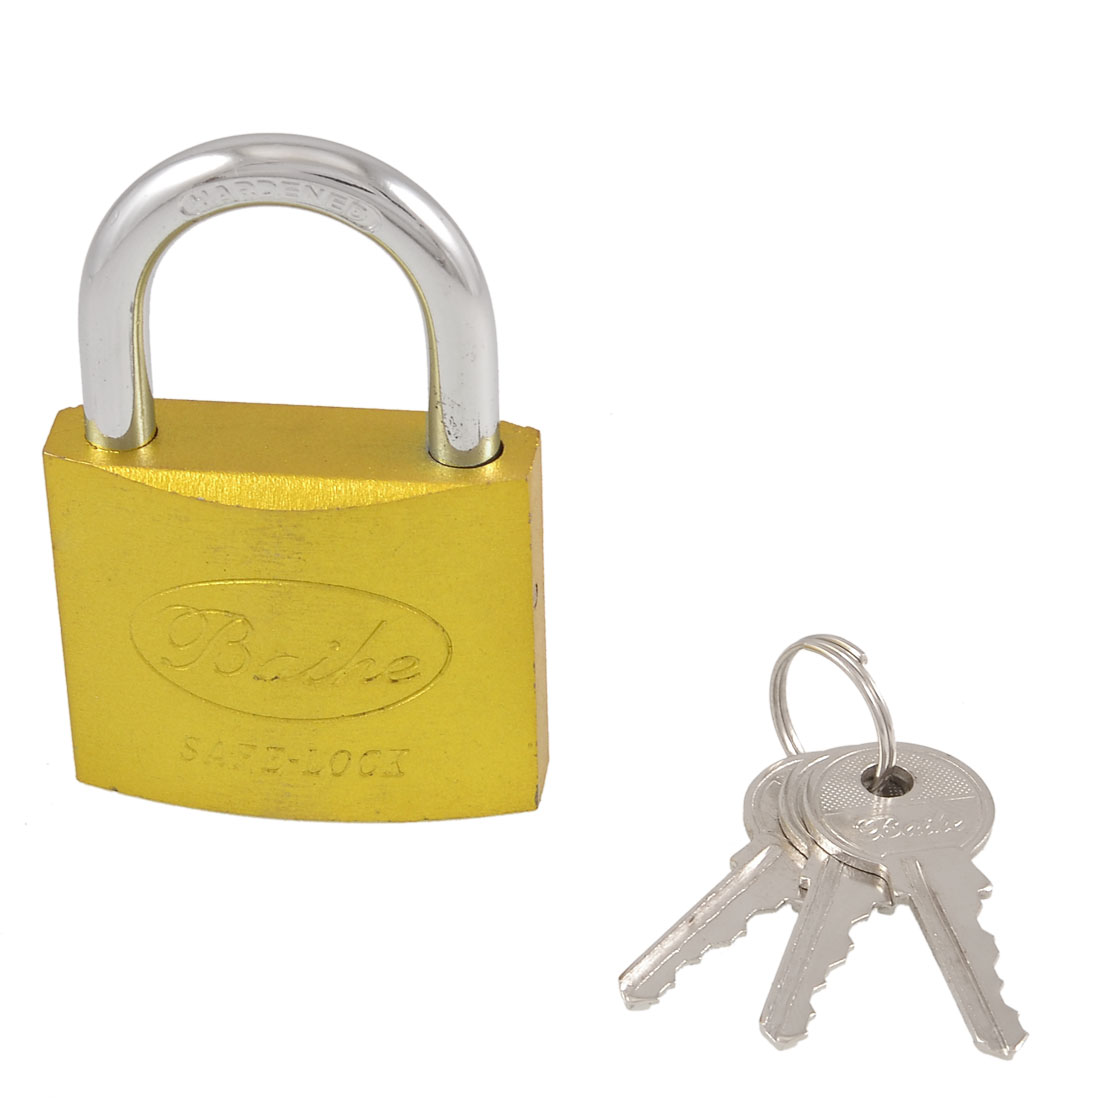 PADLOCK 50MM WITH 3 KEYS SAFETY AND SECURITY FOR OUTDOOR